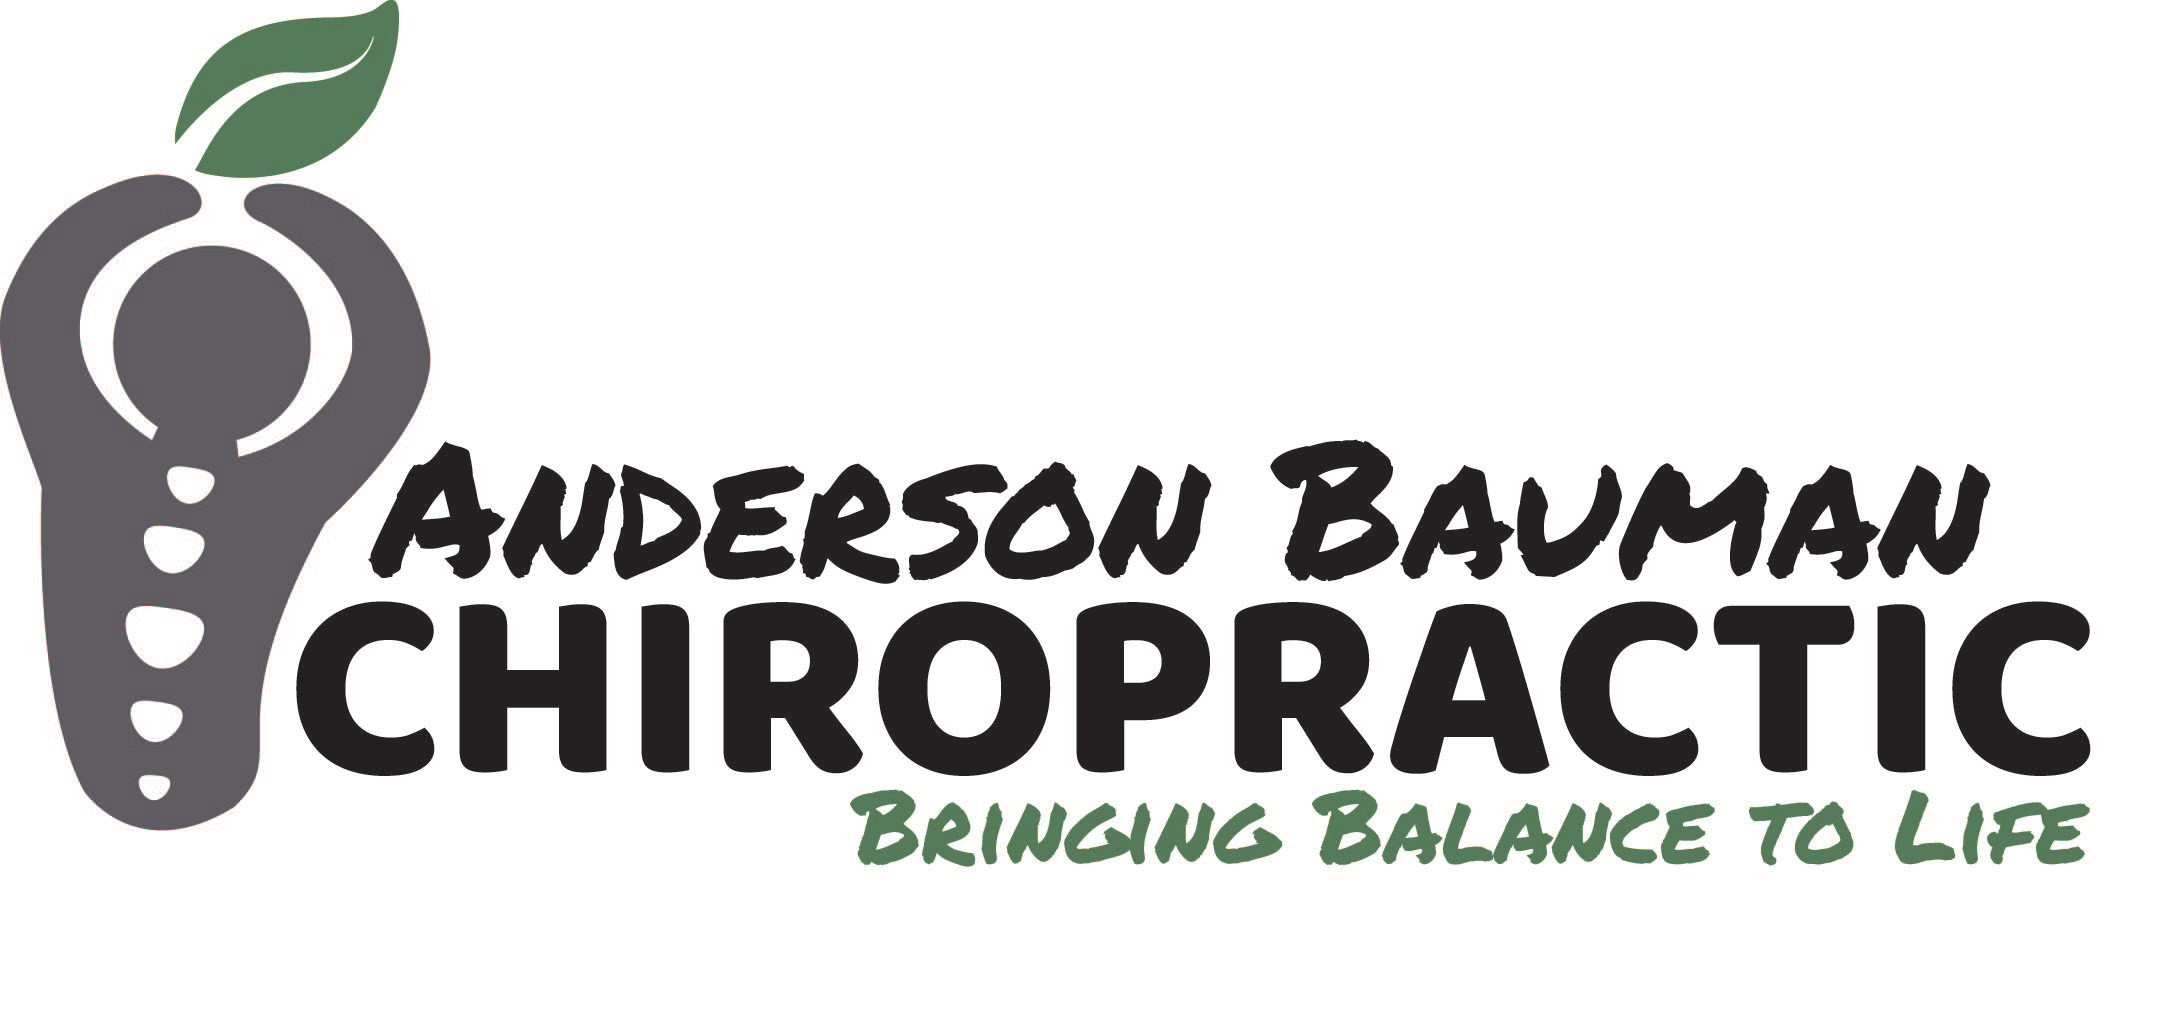 Anderson Bauman Chiropractic (Accepting New Patients